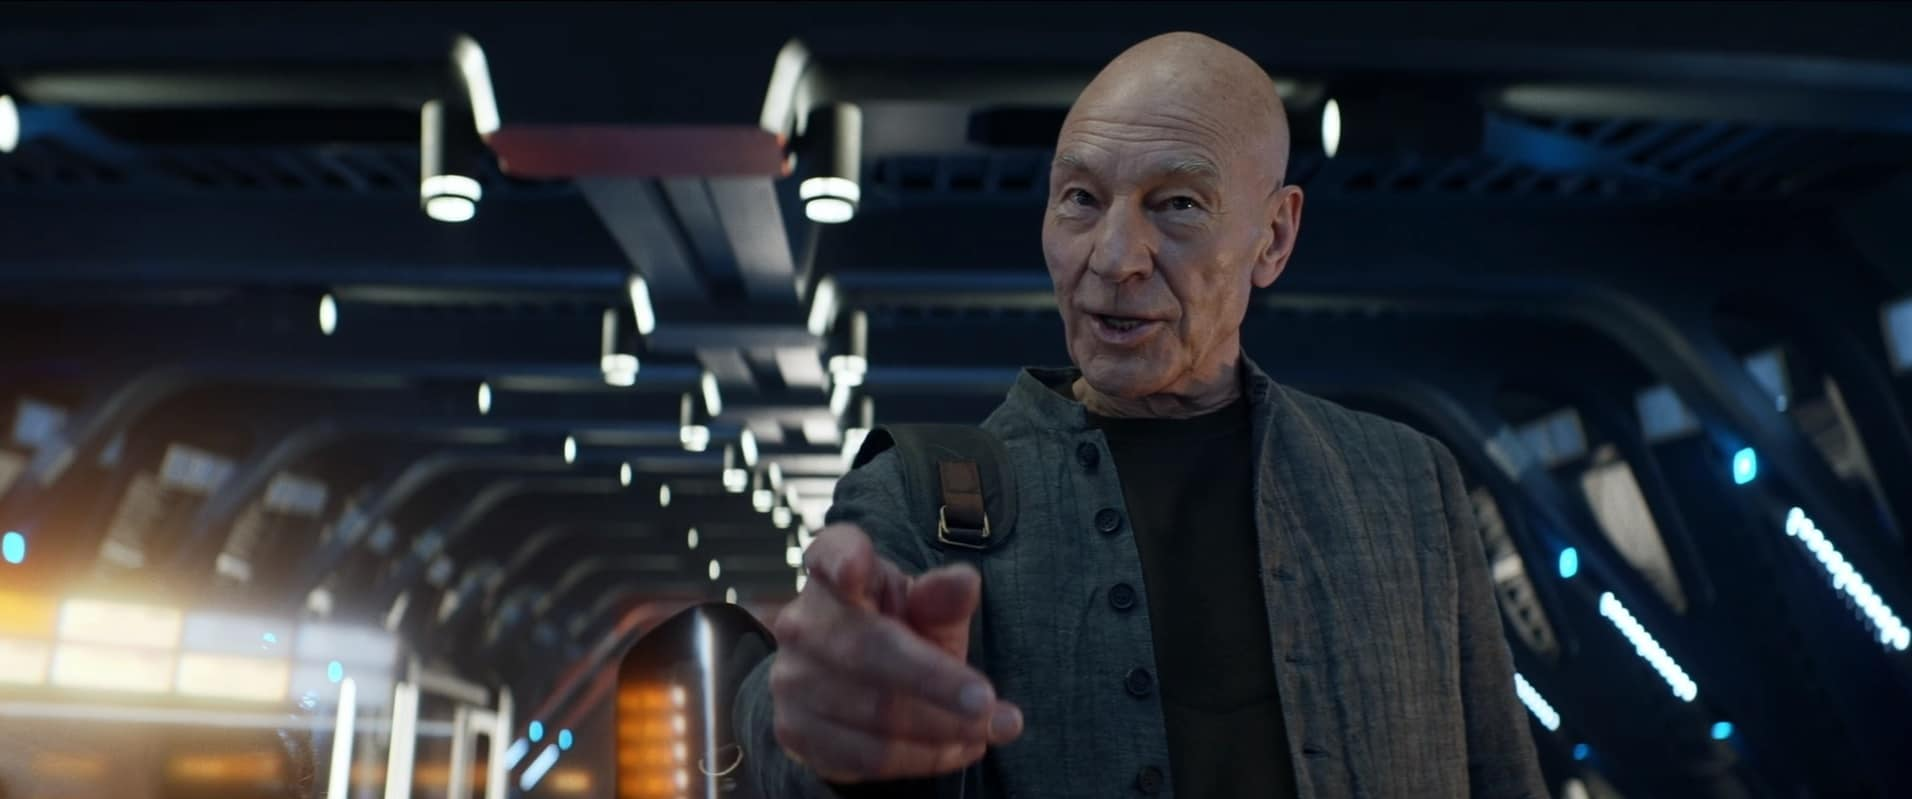 """La fine è l'inizio"" – Star Trek: Picard. Guida all'episodio"